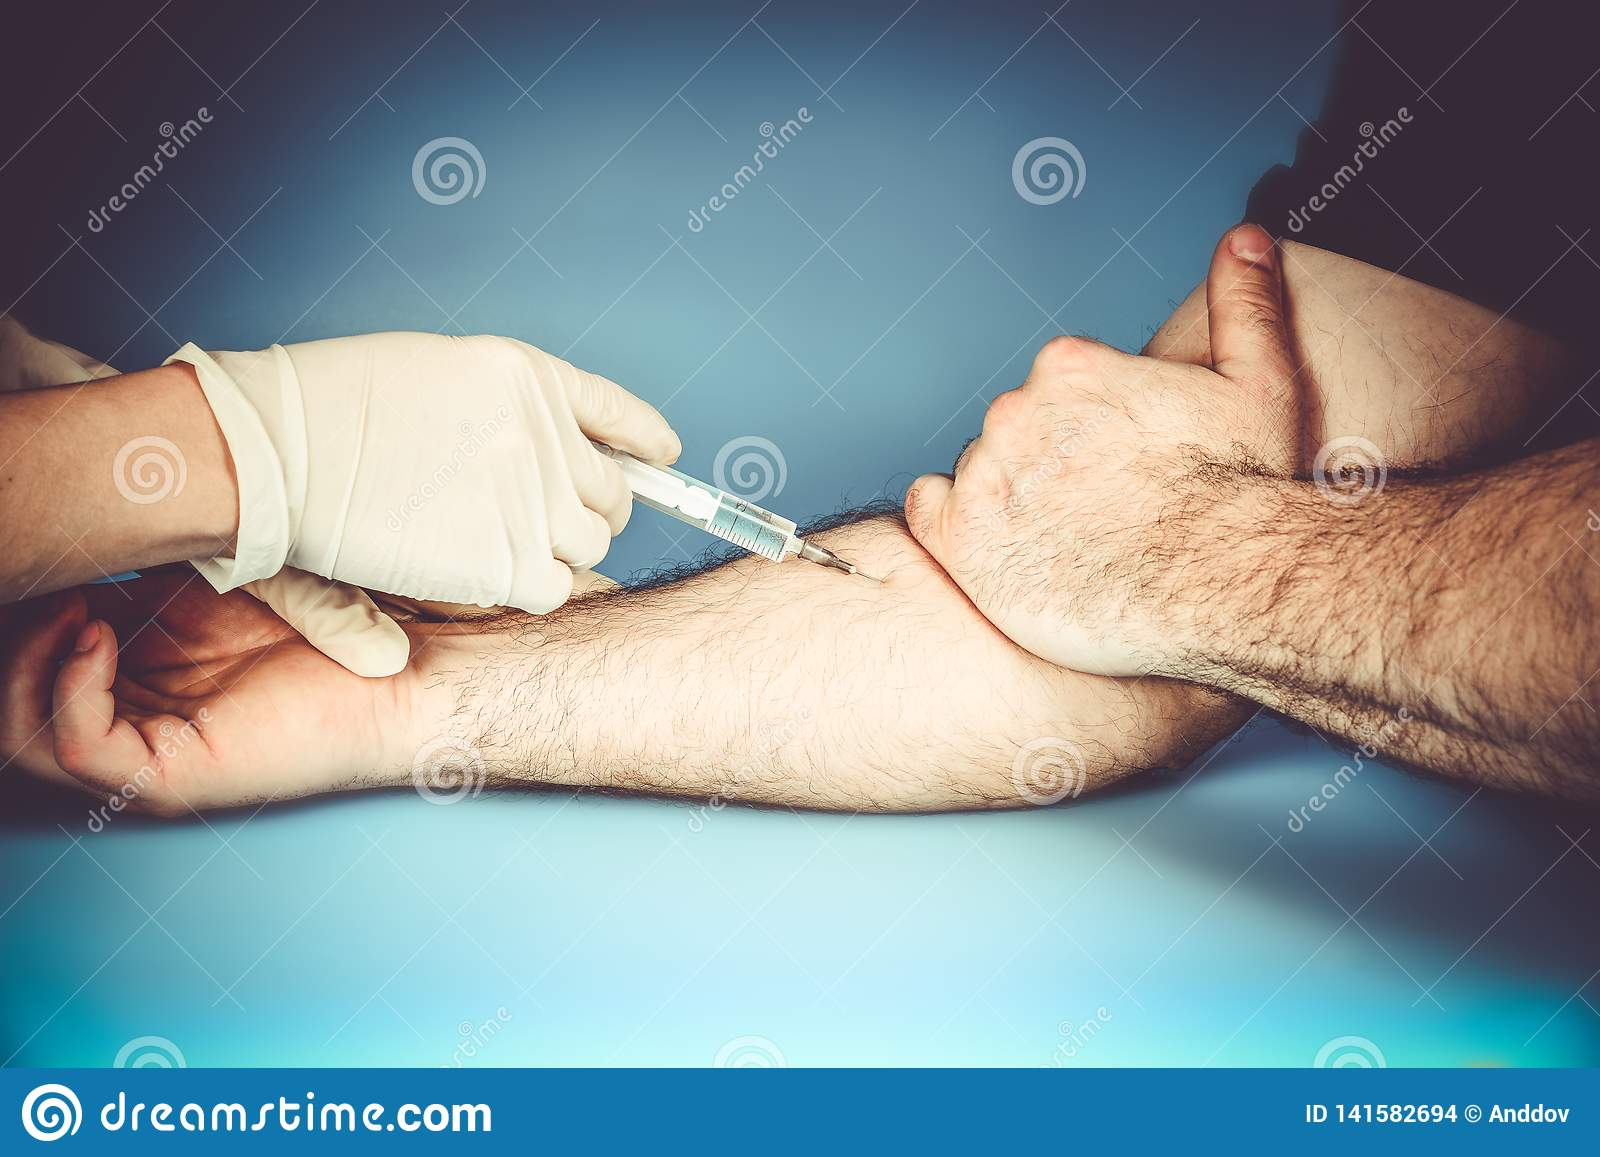 The doctor in medical gloves makes an injection intravenously to the patient during treatment to prevent the disease